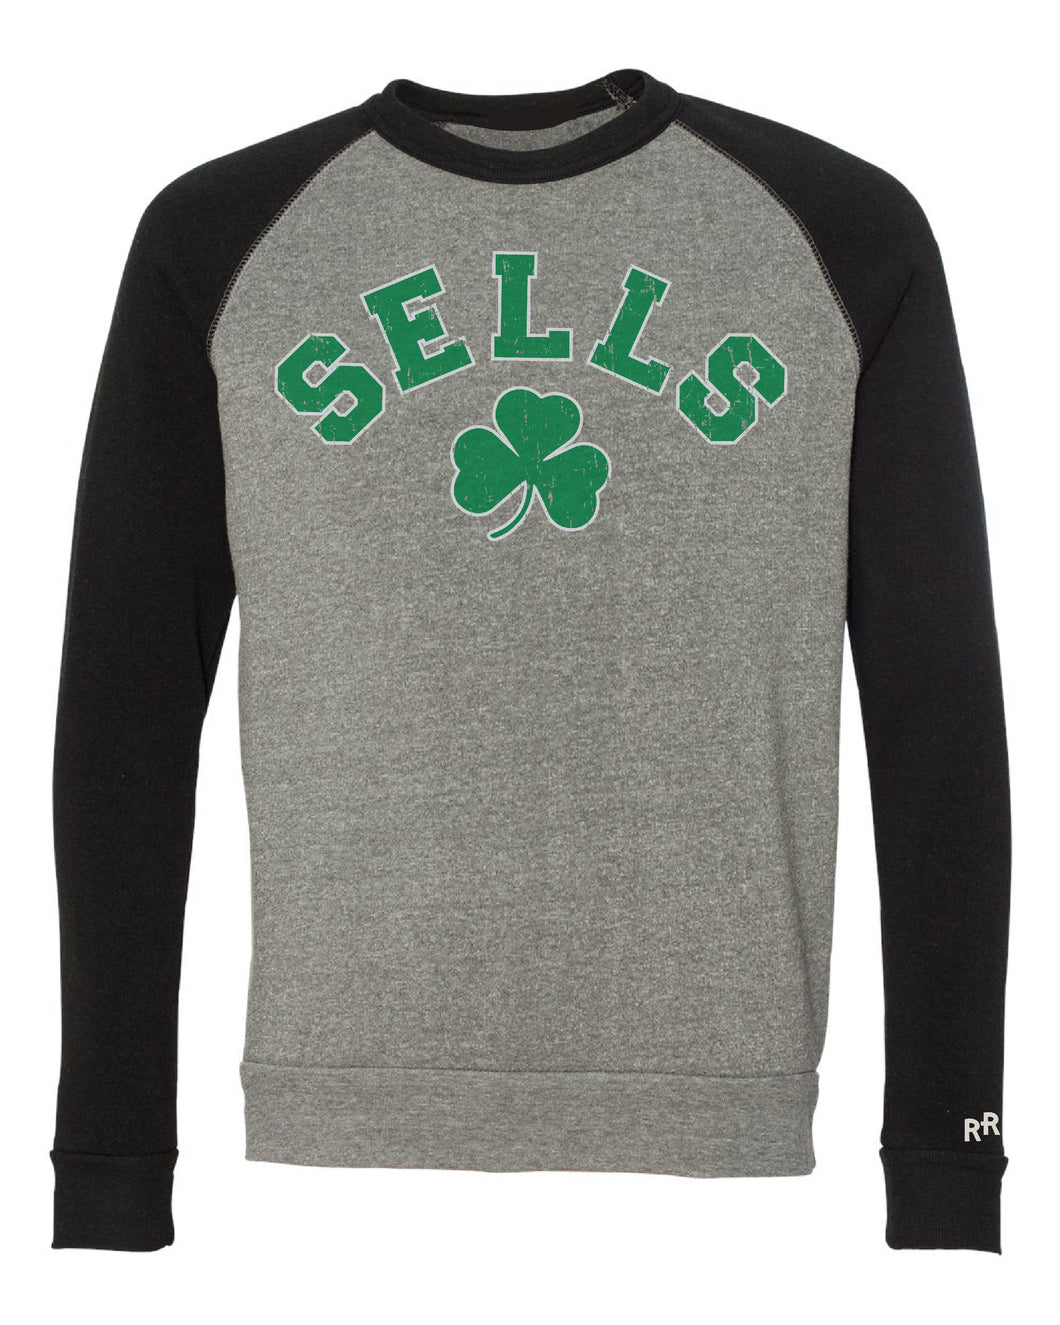 Sells Block Black & Grey Raglan Sweatshirt